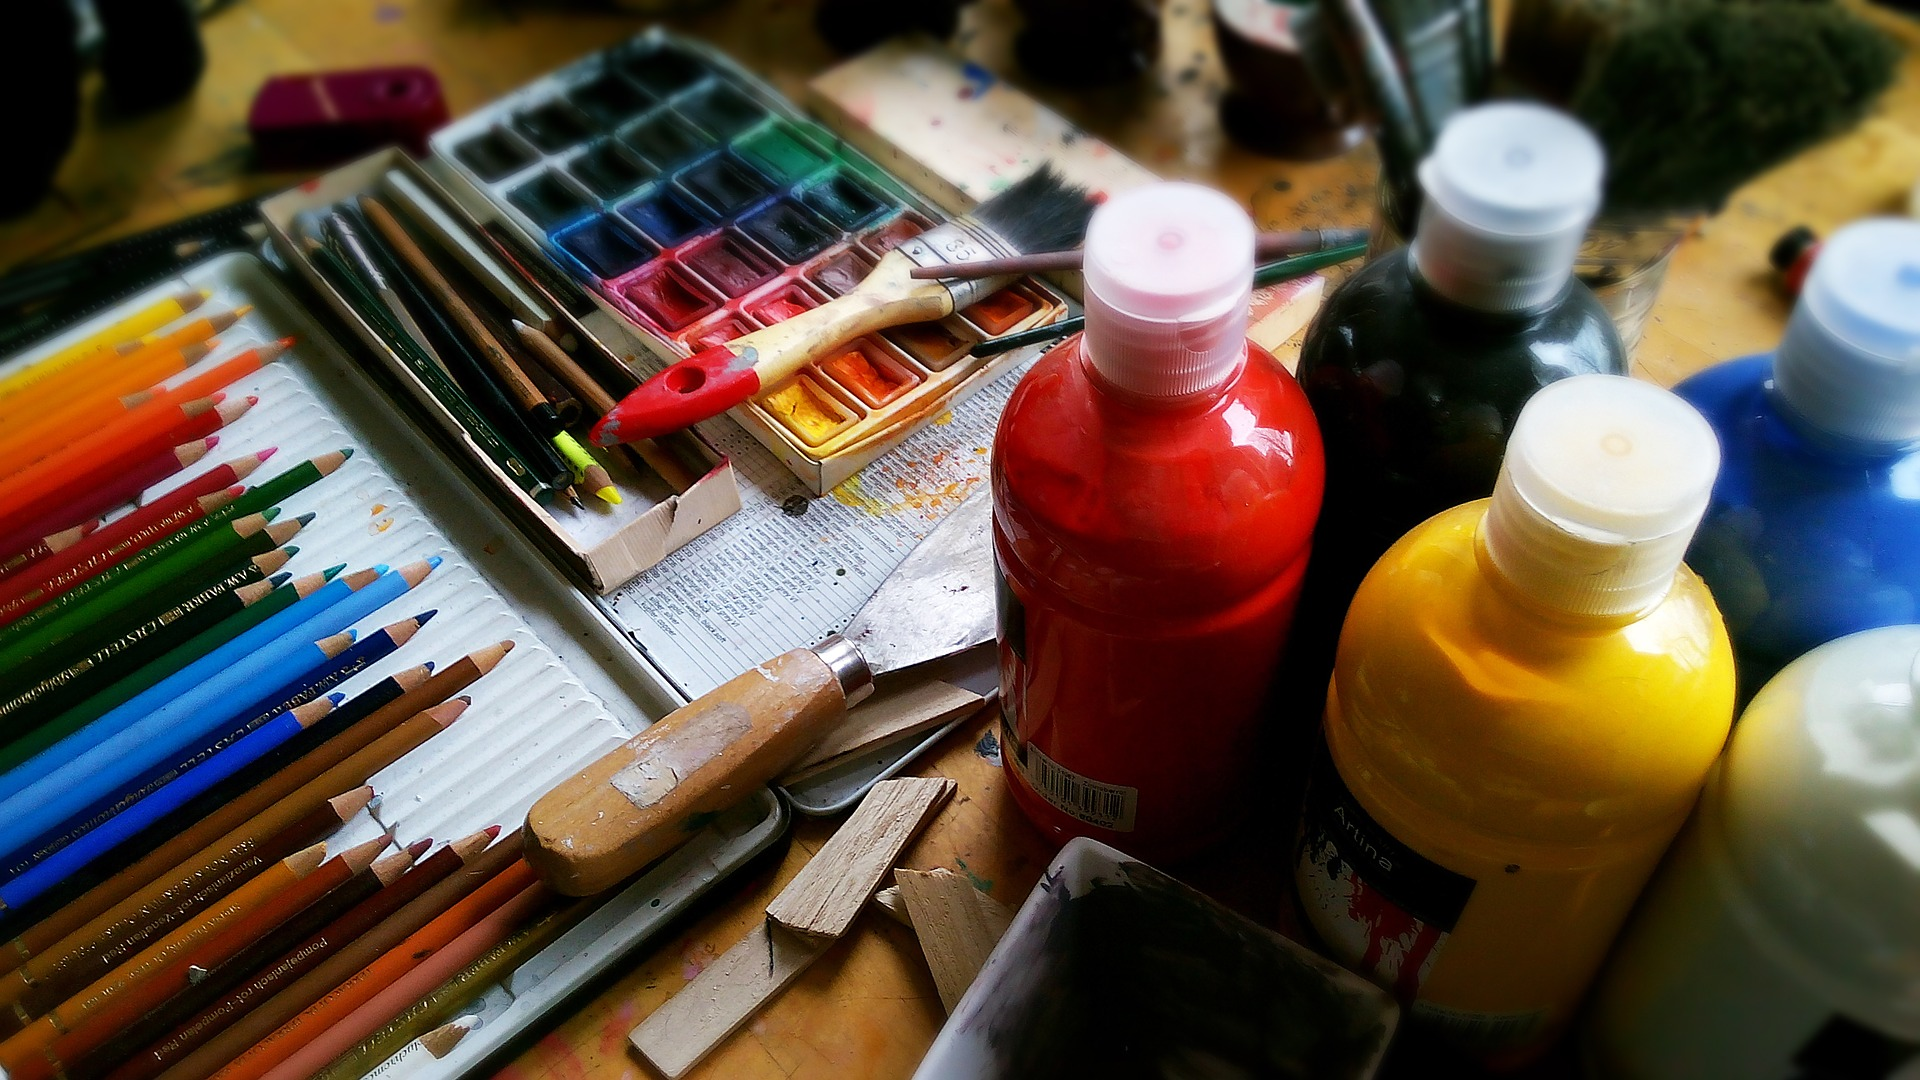 Paint brushes, paint and more.